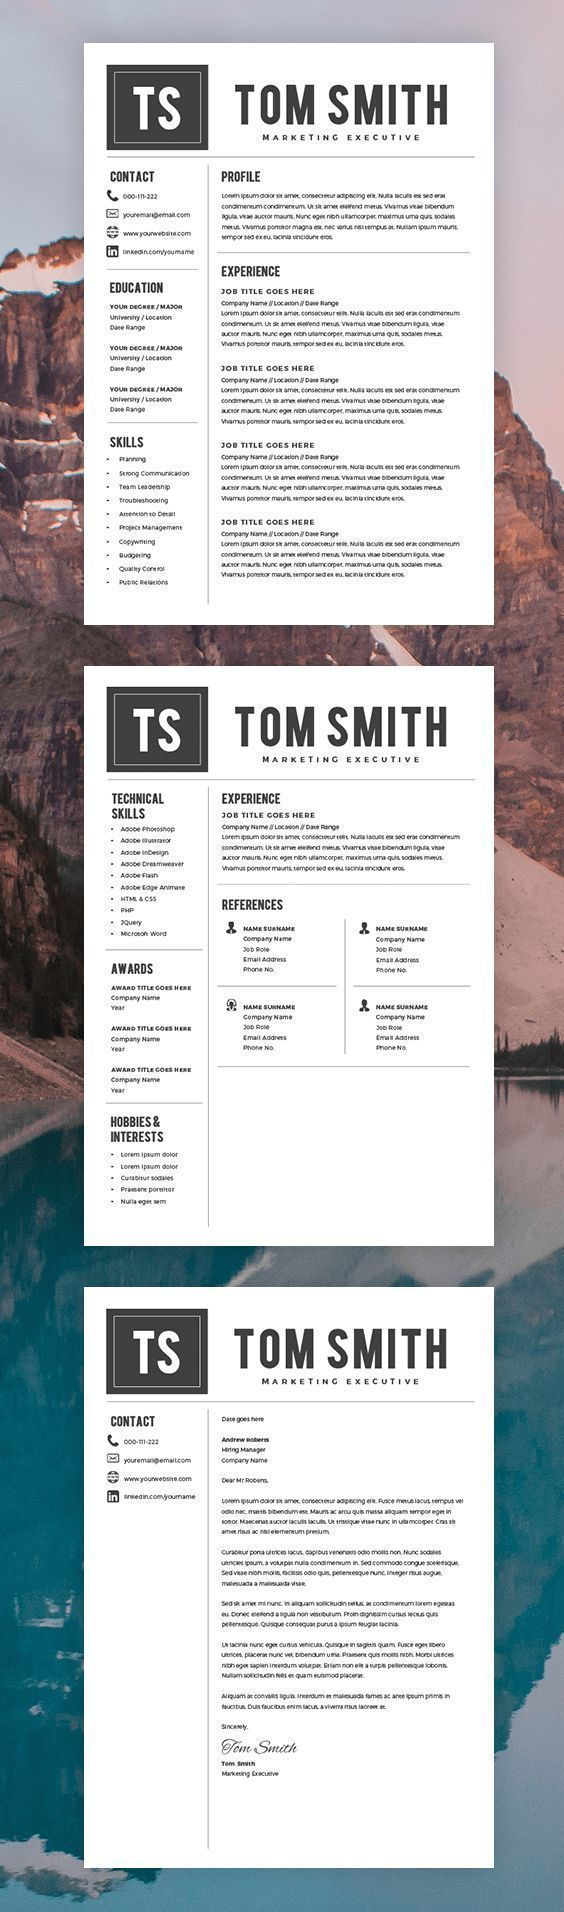 receptionist sample resume%0A Modern Resume Template  Free Cover Letter  CV Template  MS Word on Mac